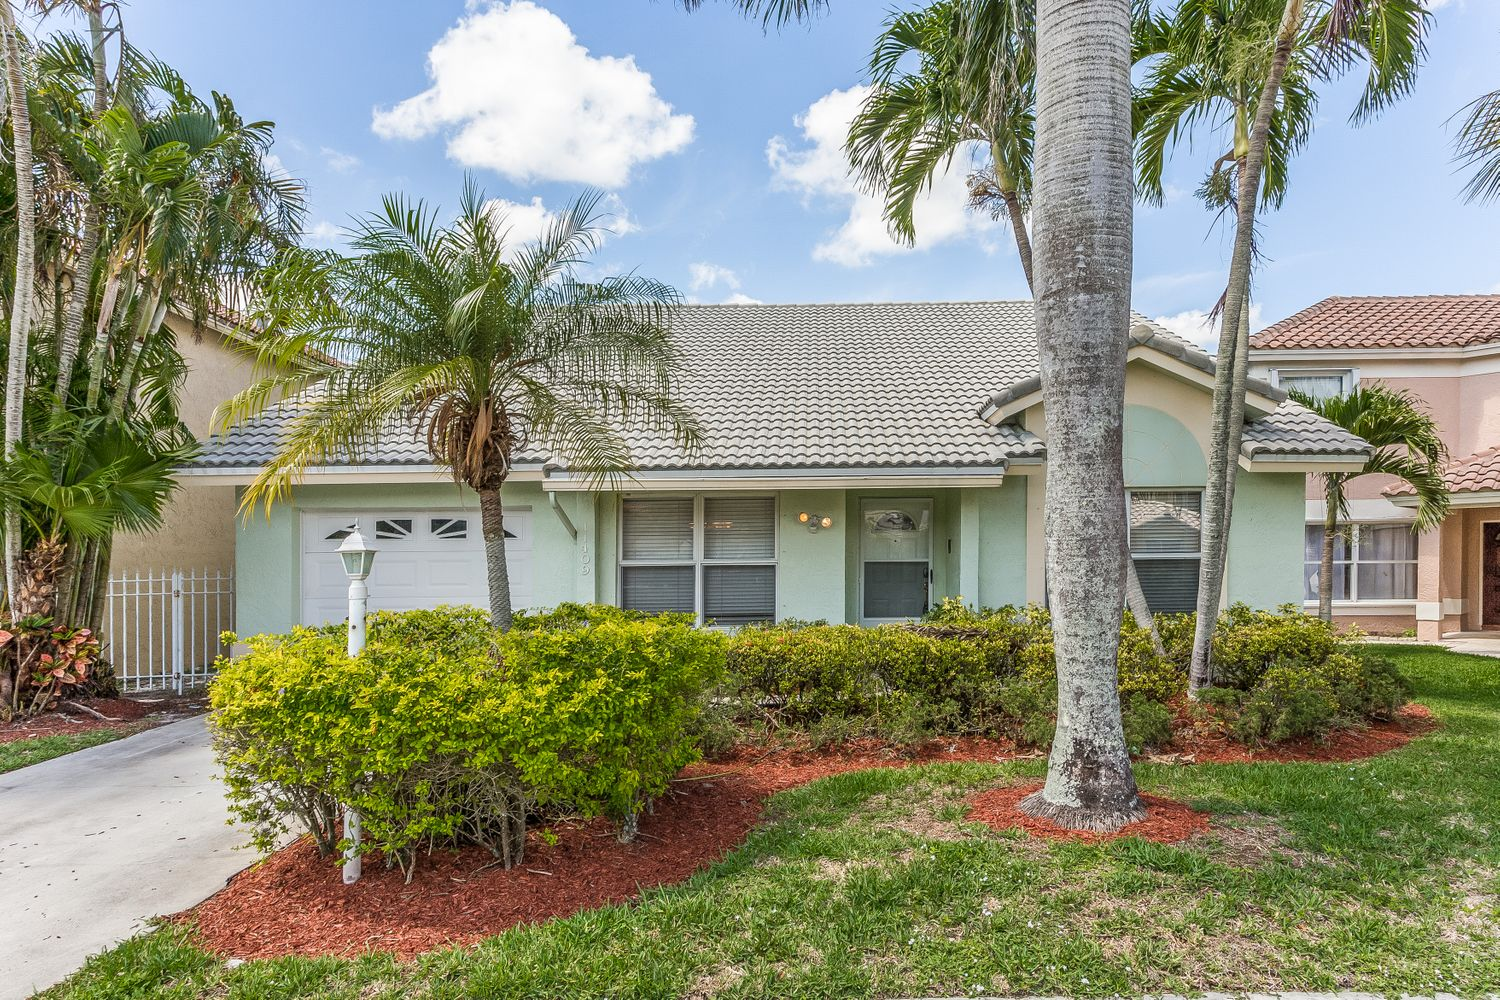 Single Family Houses for Rent in South Florida | Invitation Homes